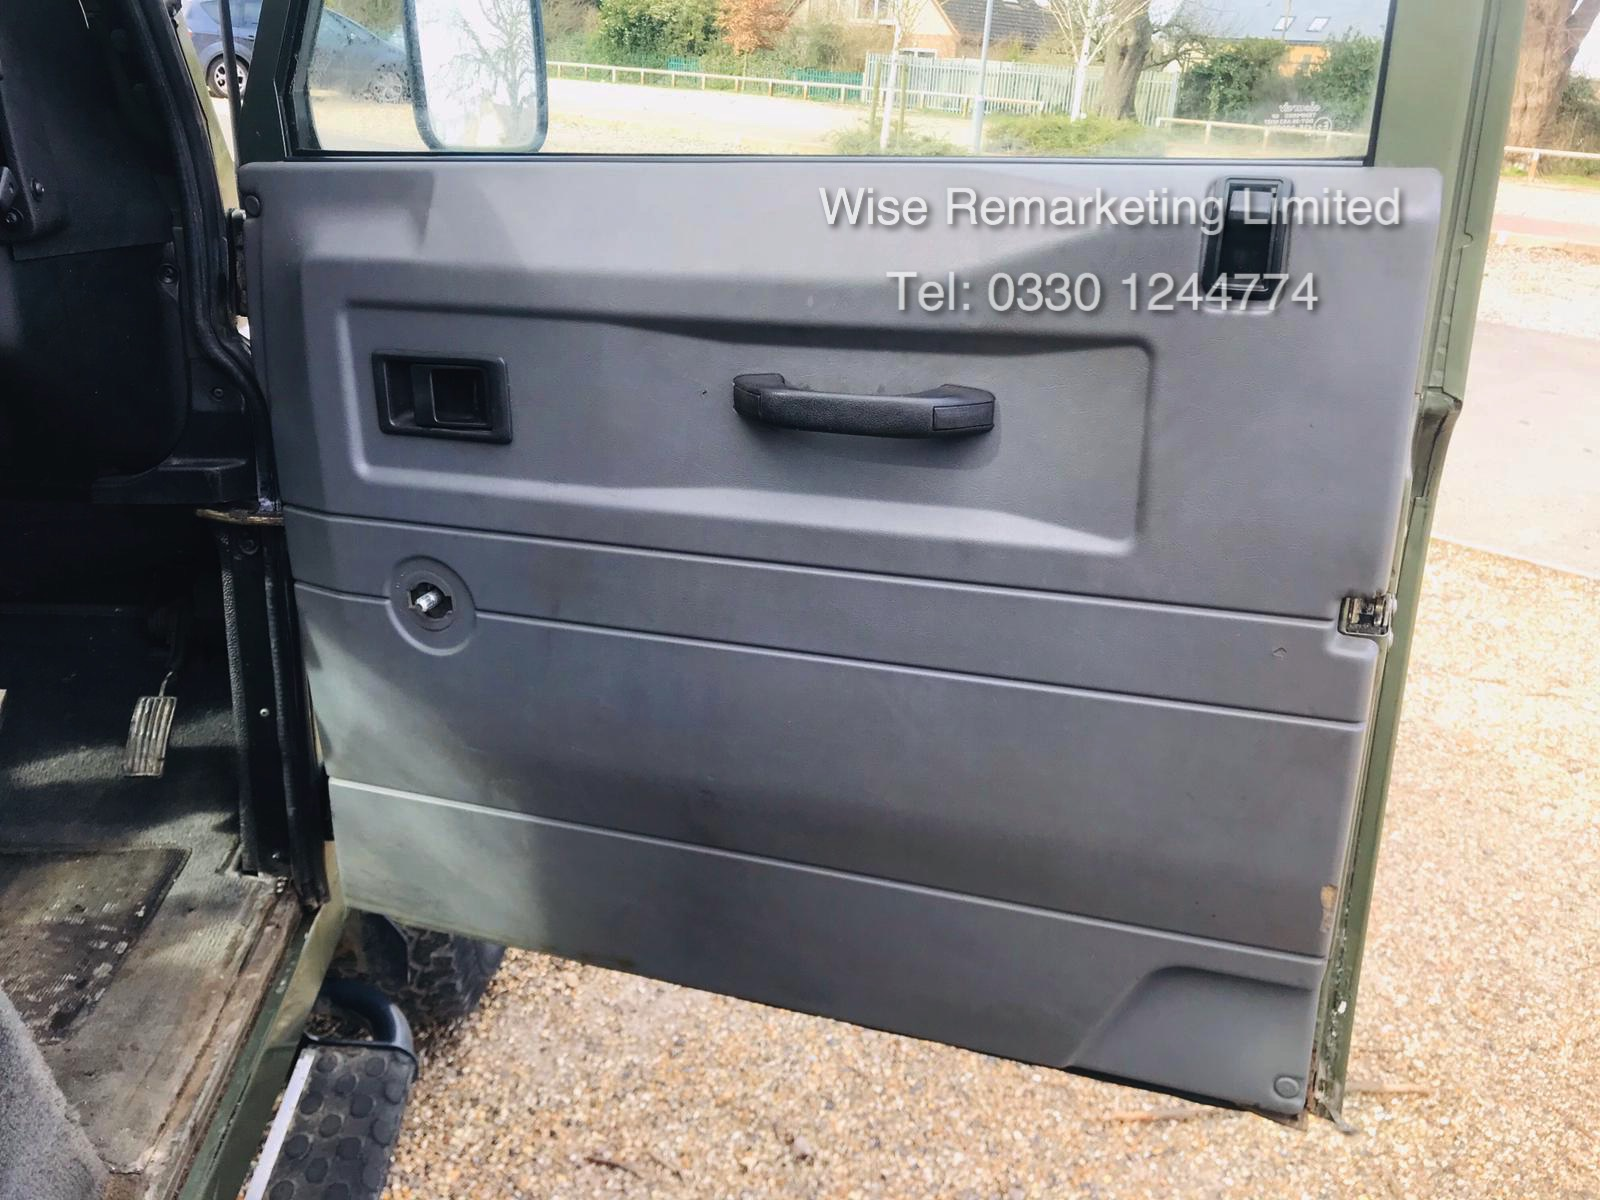 (RESERVE MET) Land Rover Defender 90 County 2.5 TD5 - 2000 Year W Reg - 7 Seater- SAVE 20% NO VAT - Image 10 of 12